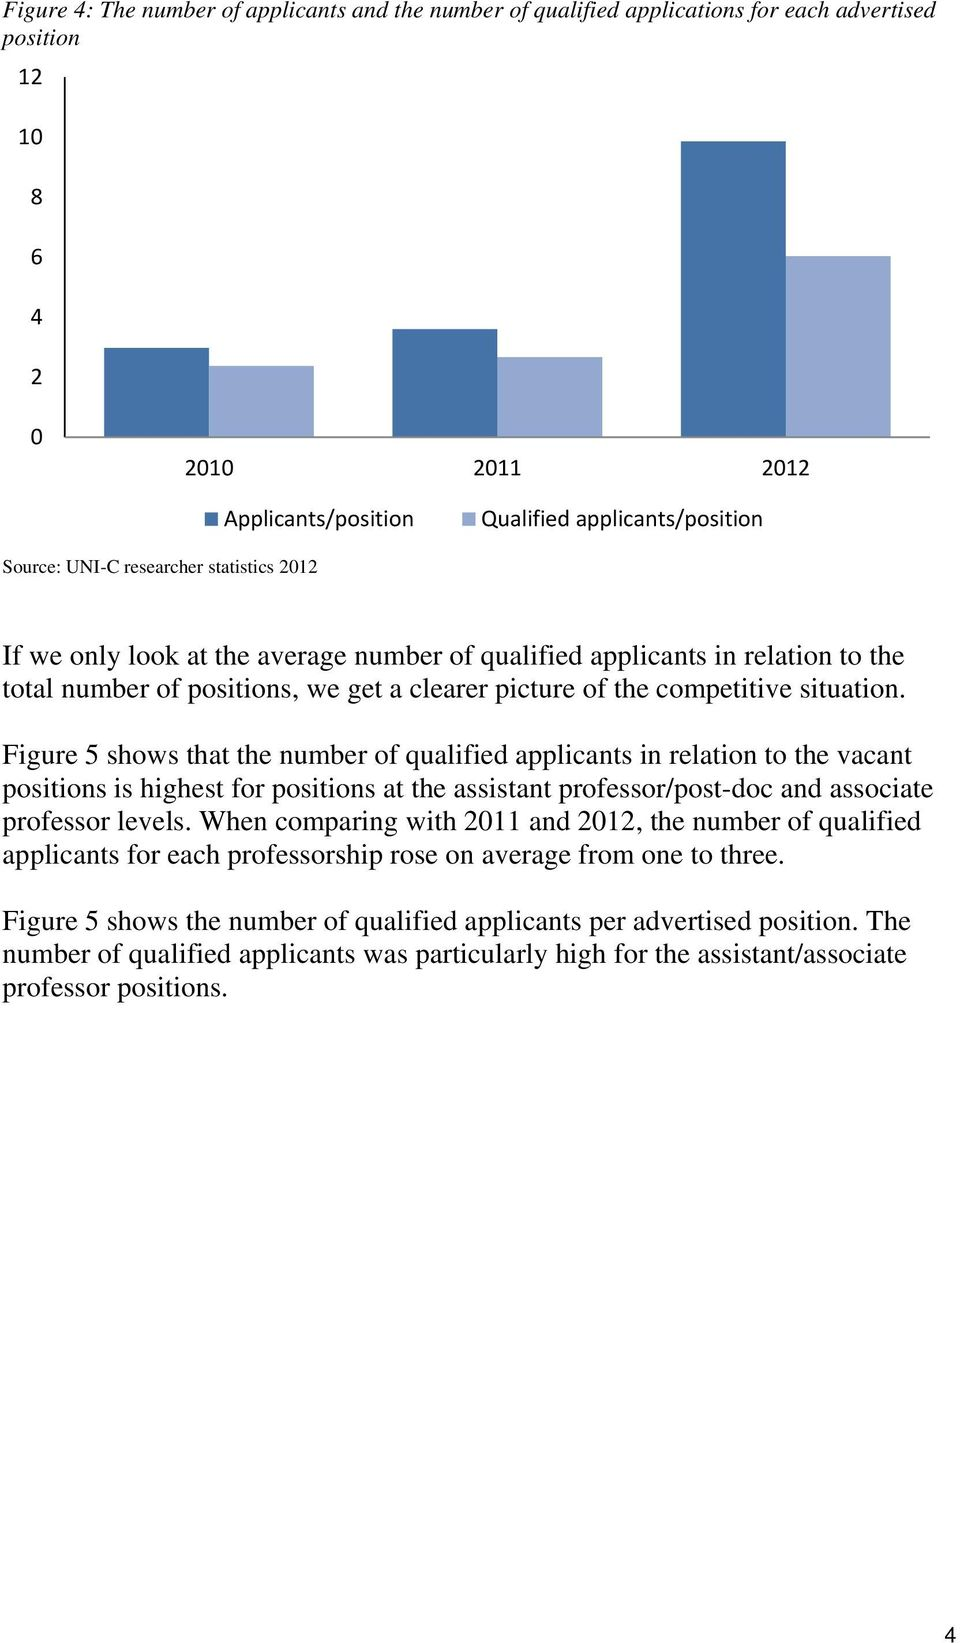 Figure 5 shows that the number of qualified applicants in relation to the vacant positions is highest for positions at the assistant professor/post-doc and associate professor levels.